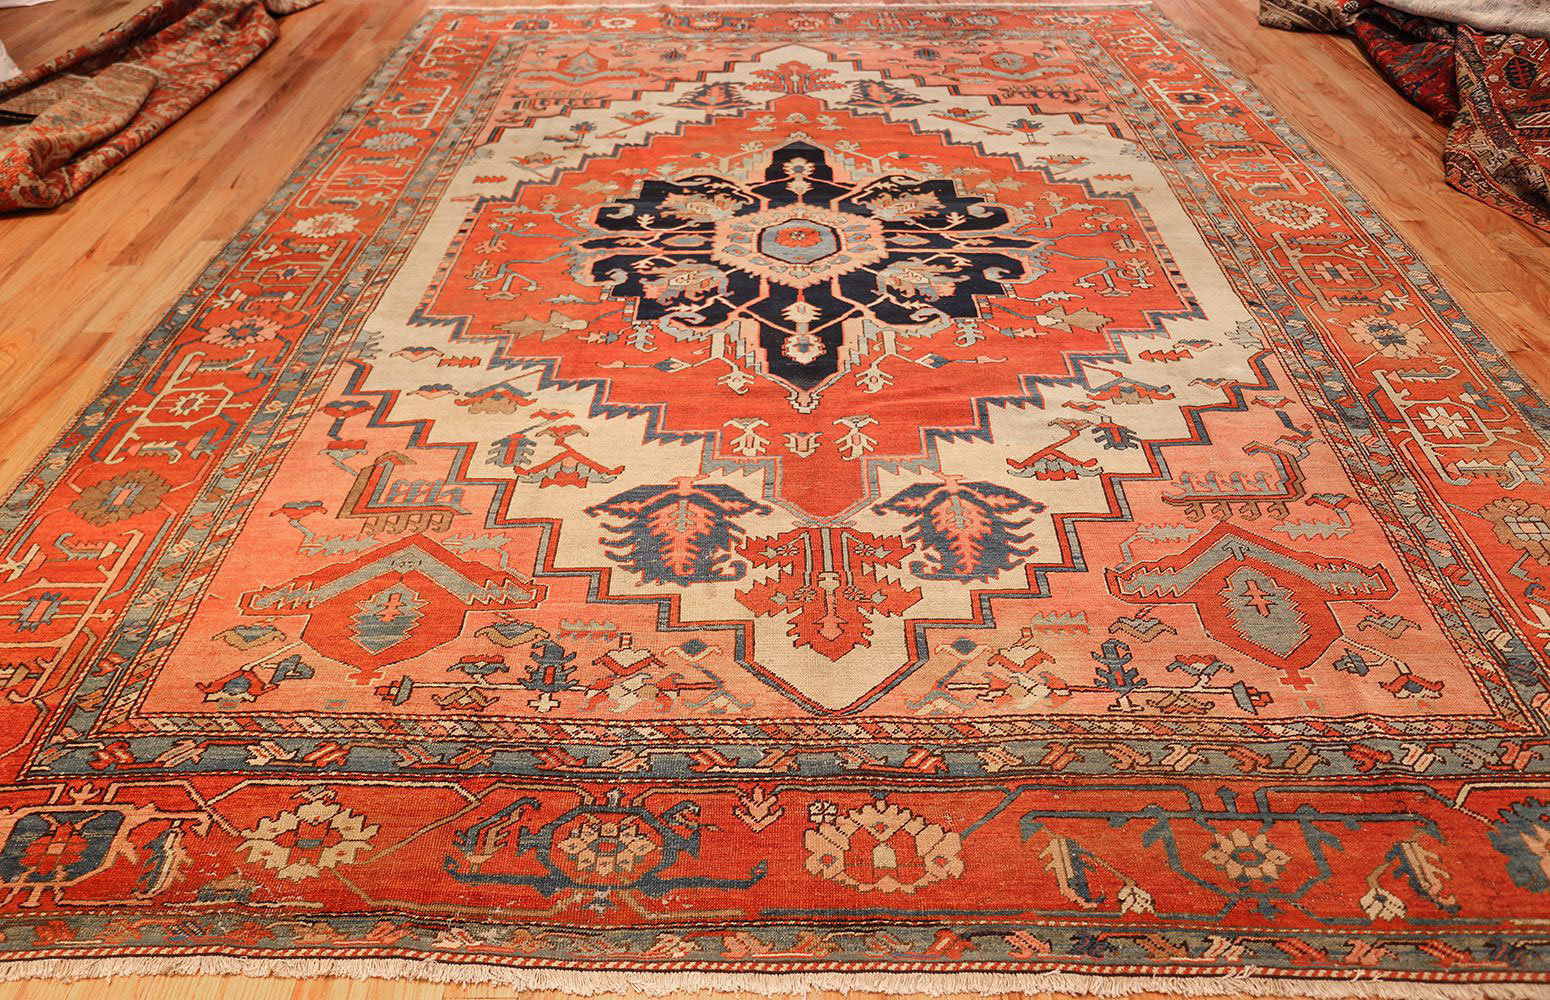 Antique heriz Carpet - # 53467